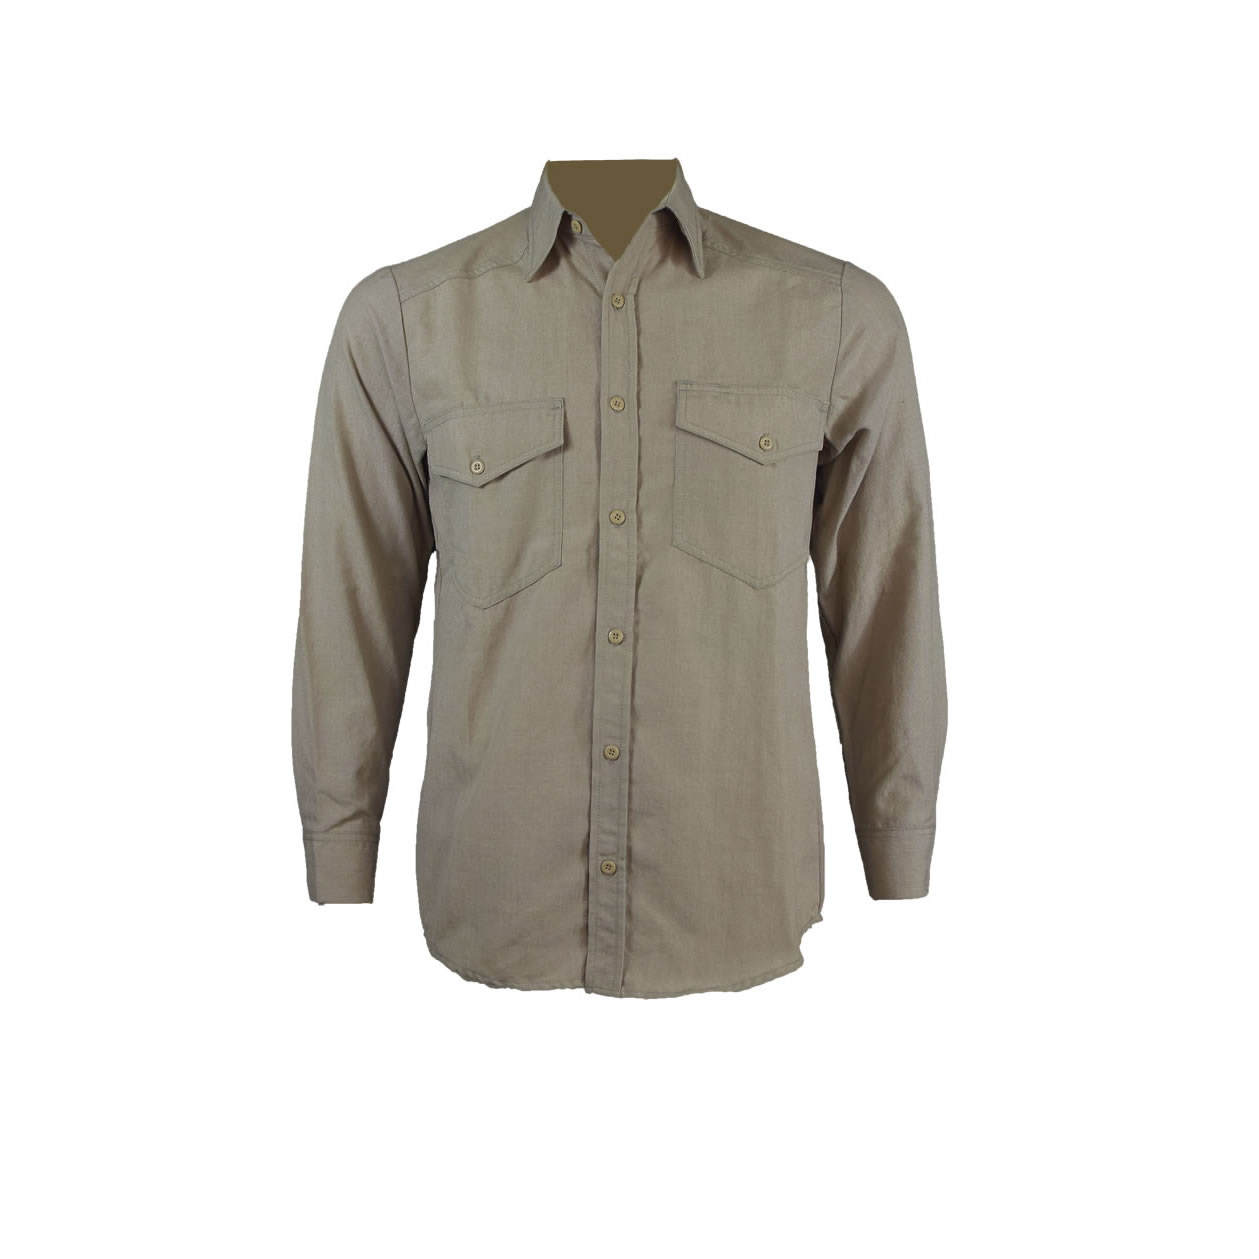 OEM Customized Aramid Inherent flame resistant Multicolor shirt with CE certified